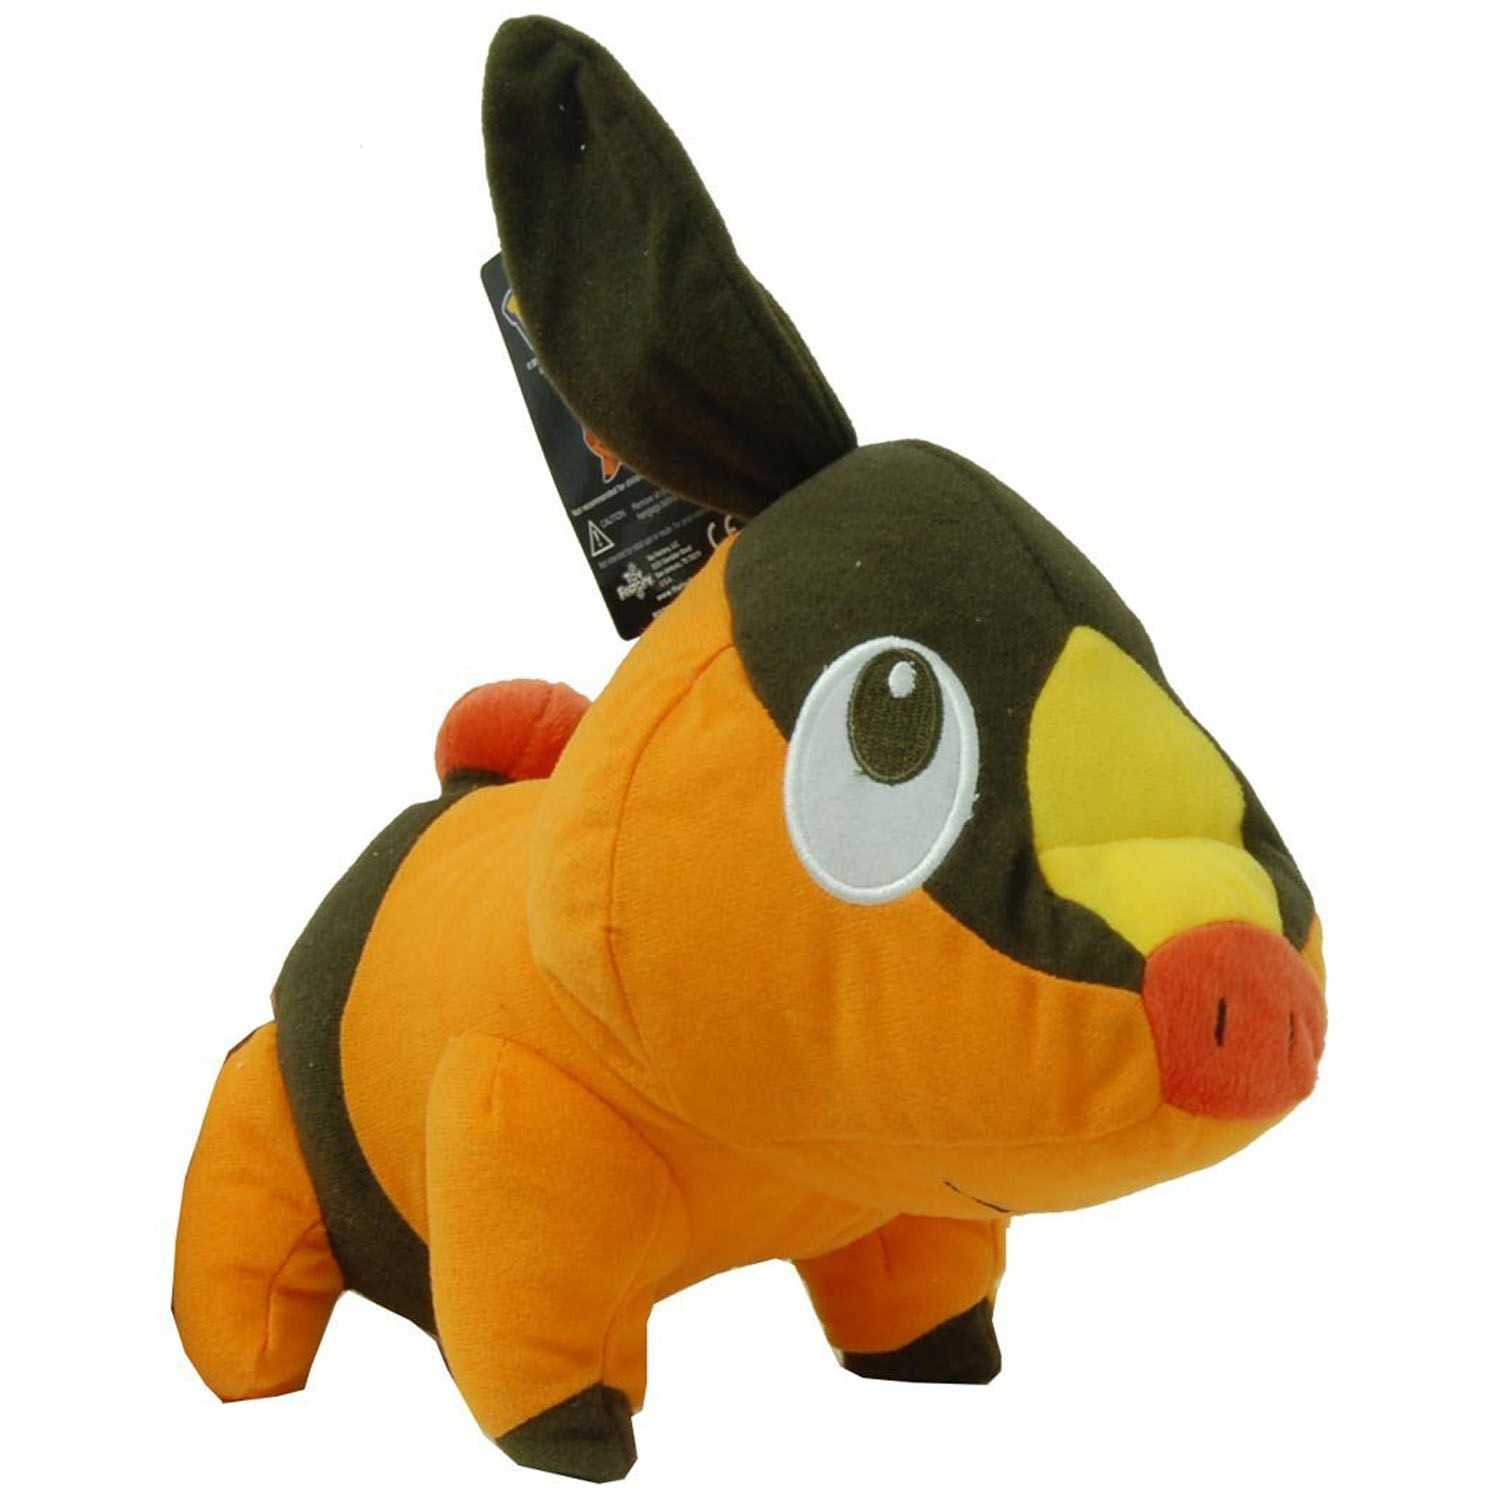 Keep tepig in your arms while you dream this cuddly plush pokemon